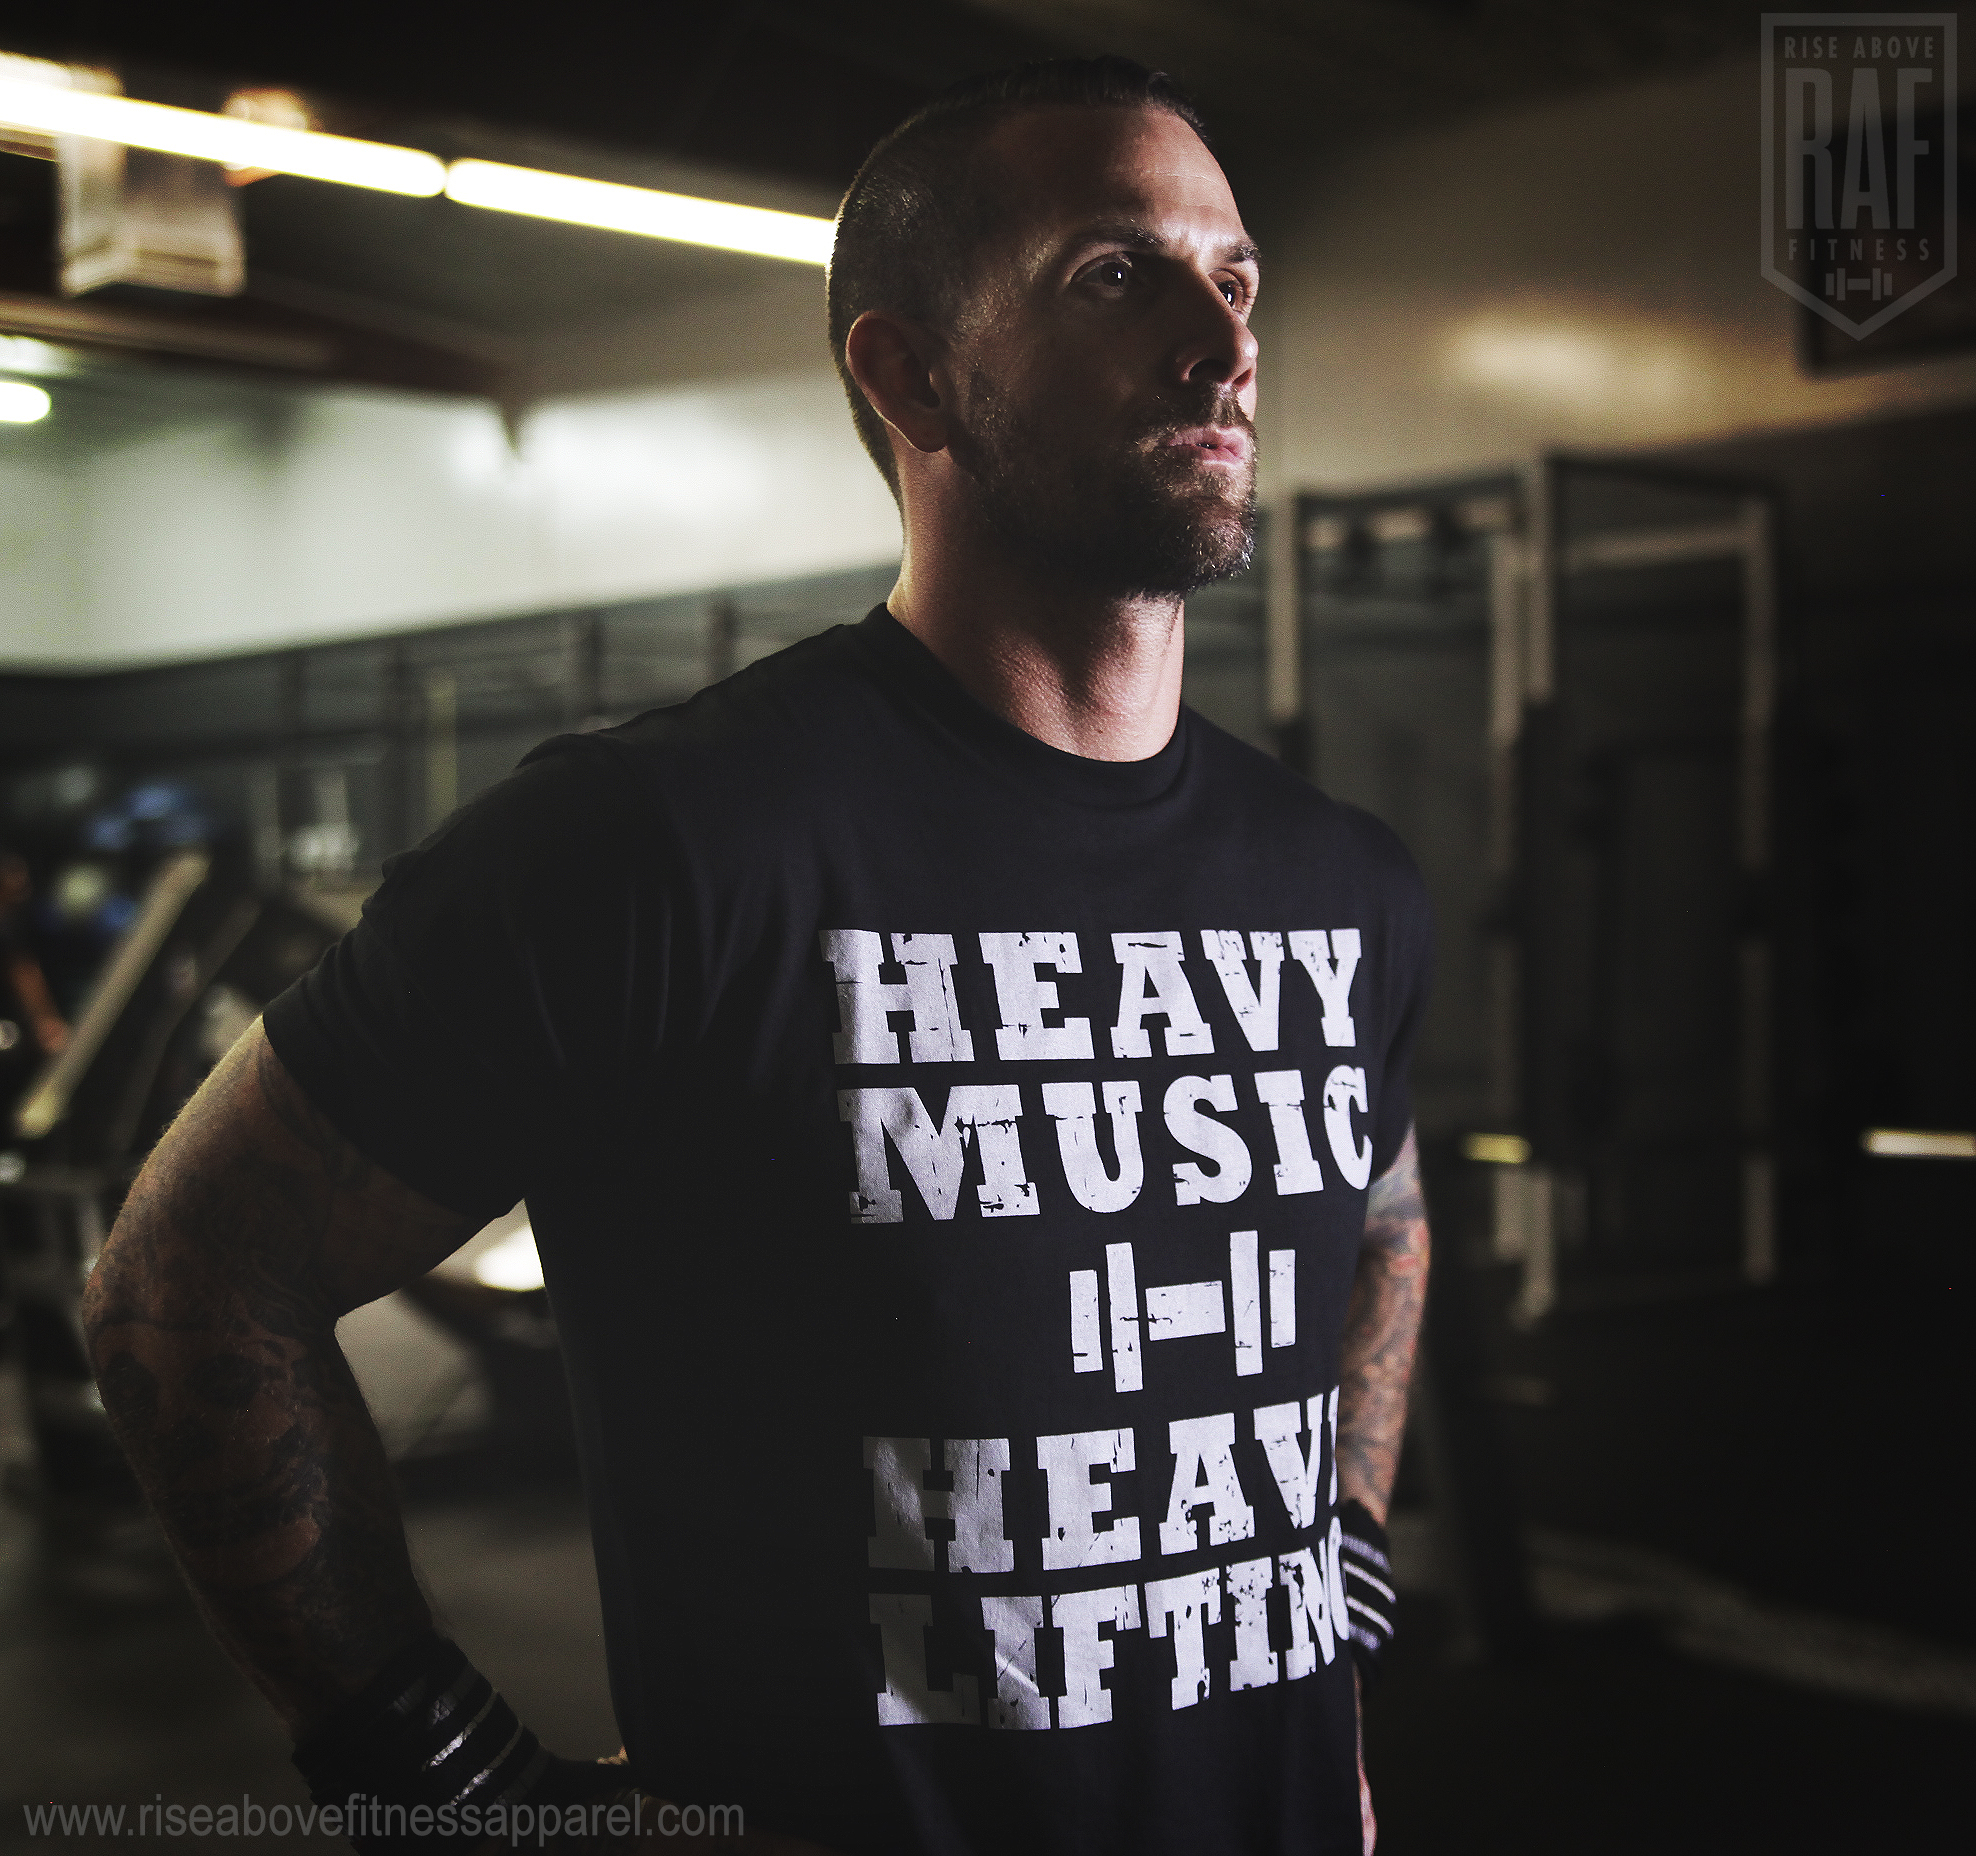 HEAVY MUSIC Men's Tee (Grey on Black)_SHOOT.jpg